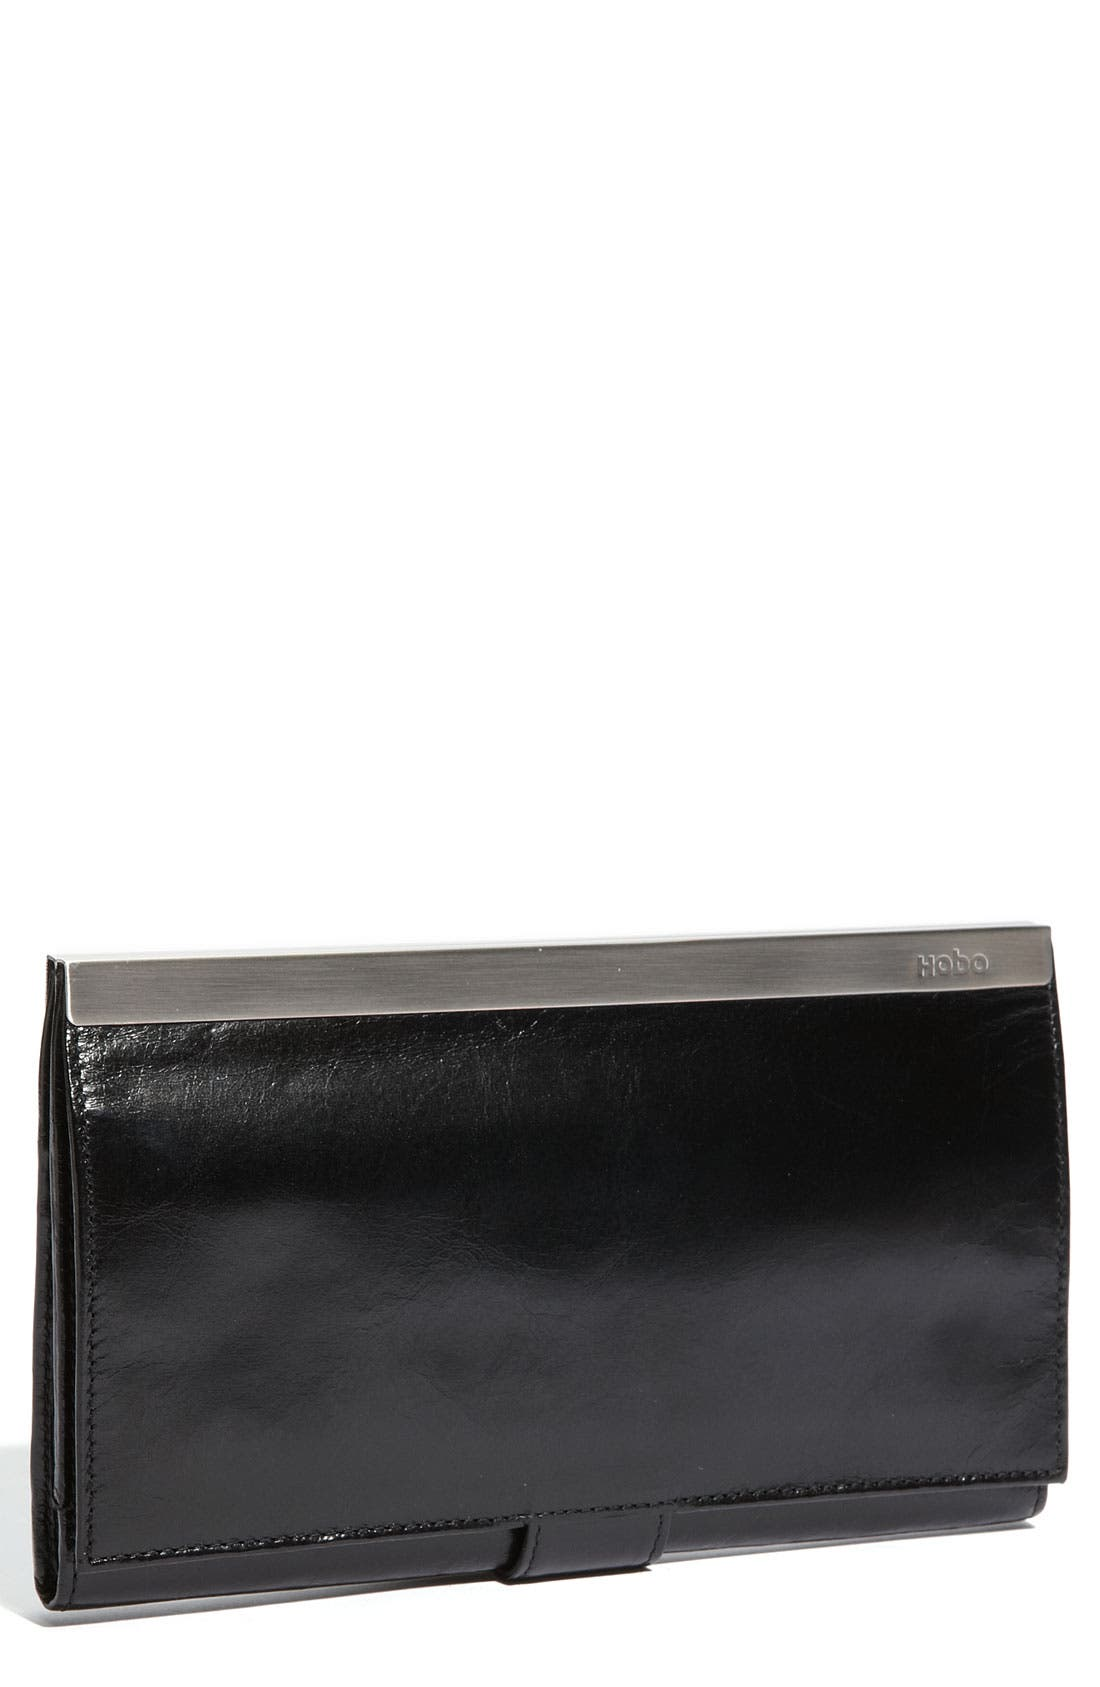 Alternate Image 1 Selected - Hobo 'Maxine' Wallet